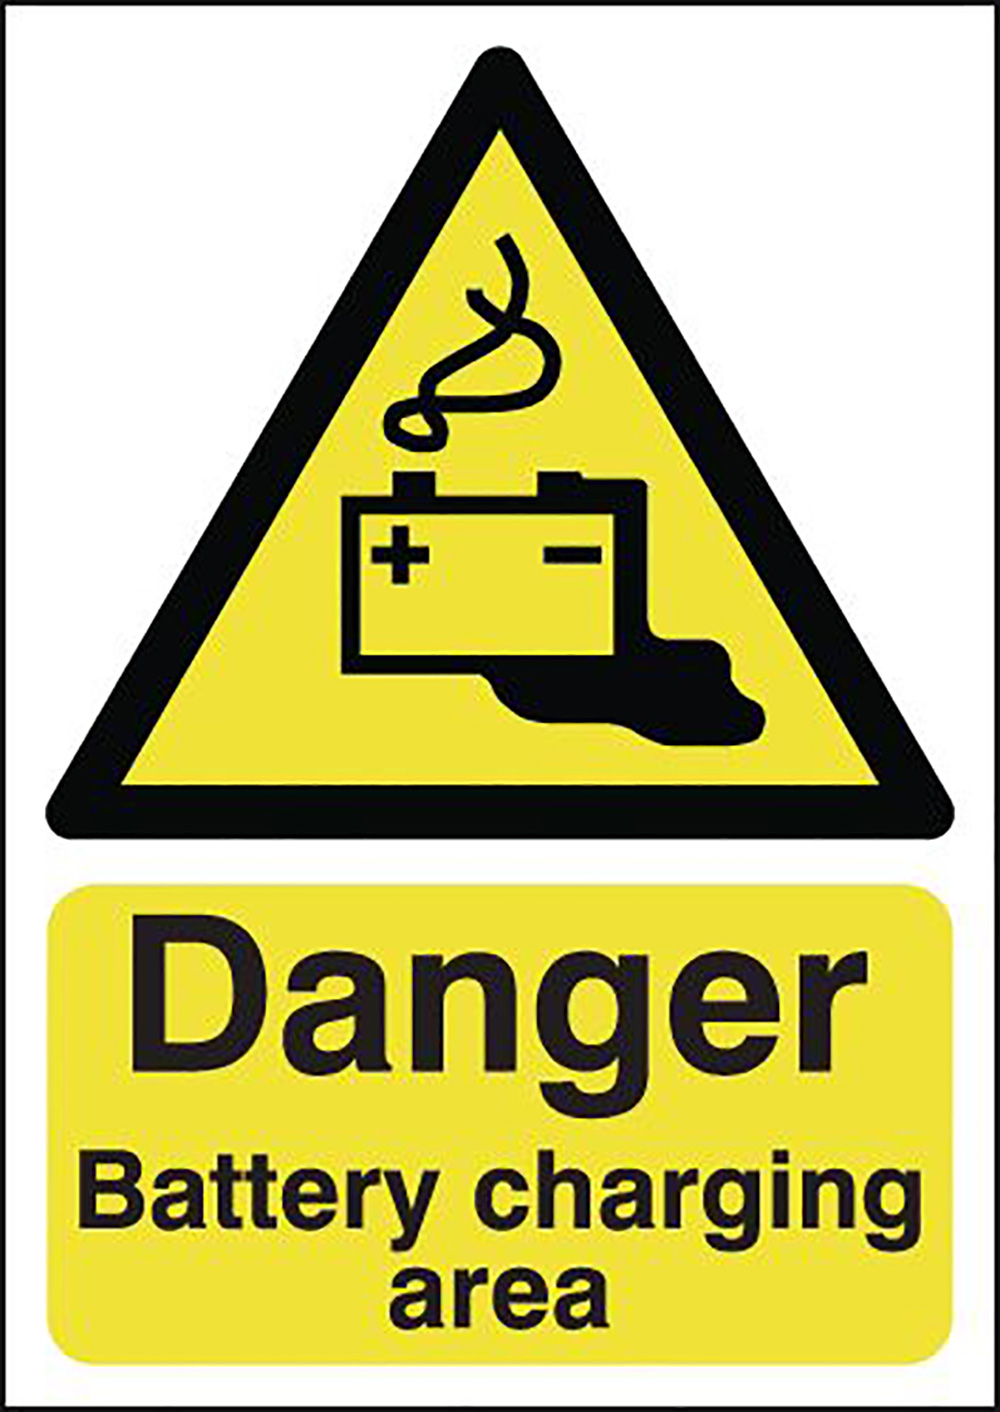 Danger Battery Charging Area 420x297mm Self Adhesive Vinyl Safety Sign